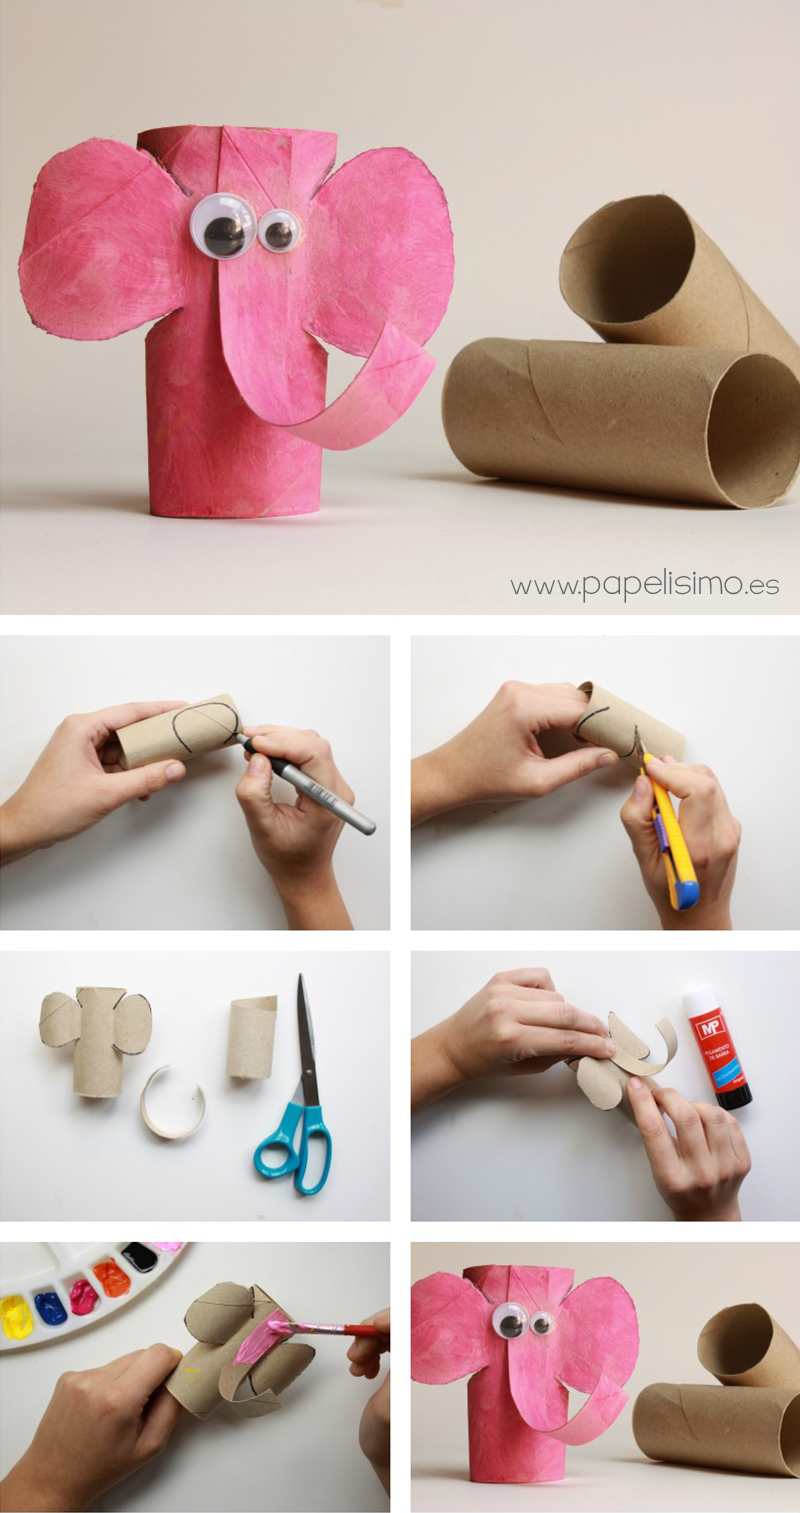 Diy animal craft ideas with toilet paper rolls elephant for Paper roll projects